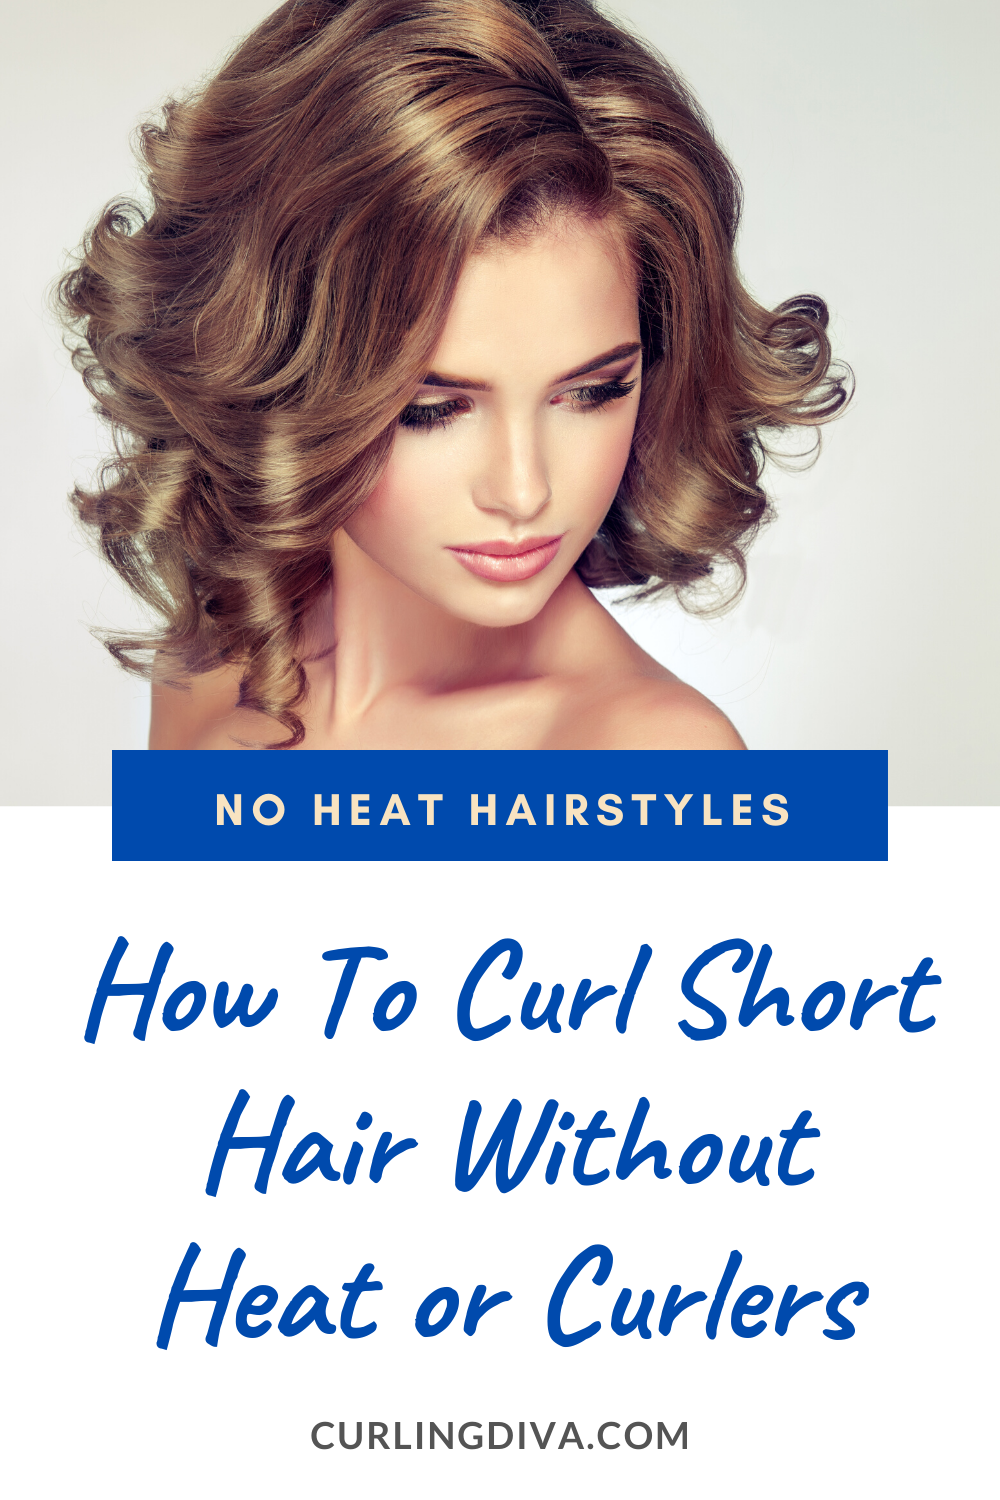 No Heat Hairstyles How To Curl Short Hair Without Heat Or Curlers In 2020 How To Curl Short Hair Hair Without Heat Curls No Heat